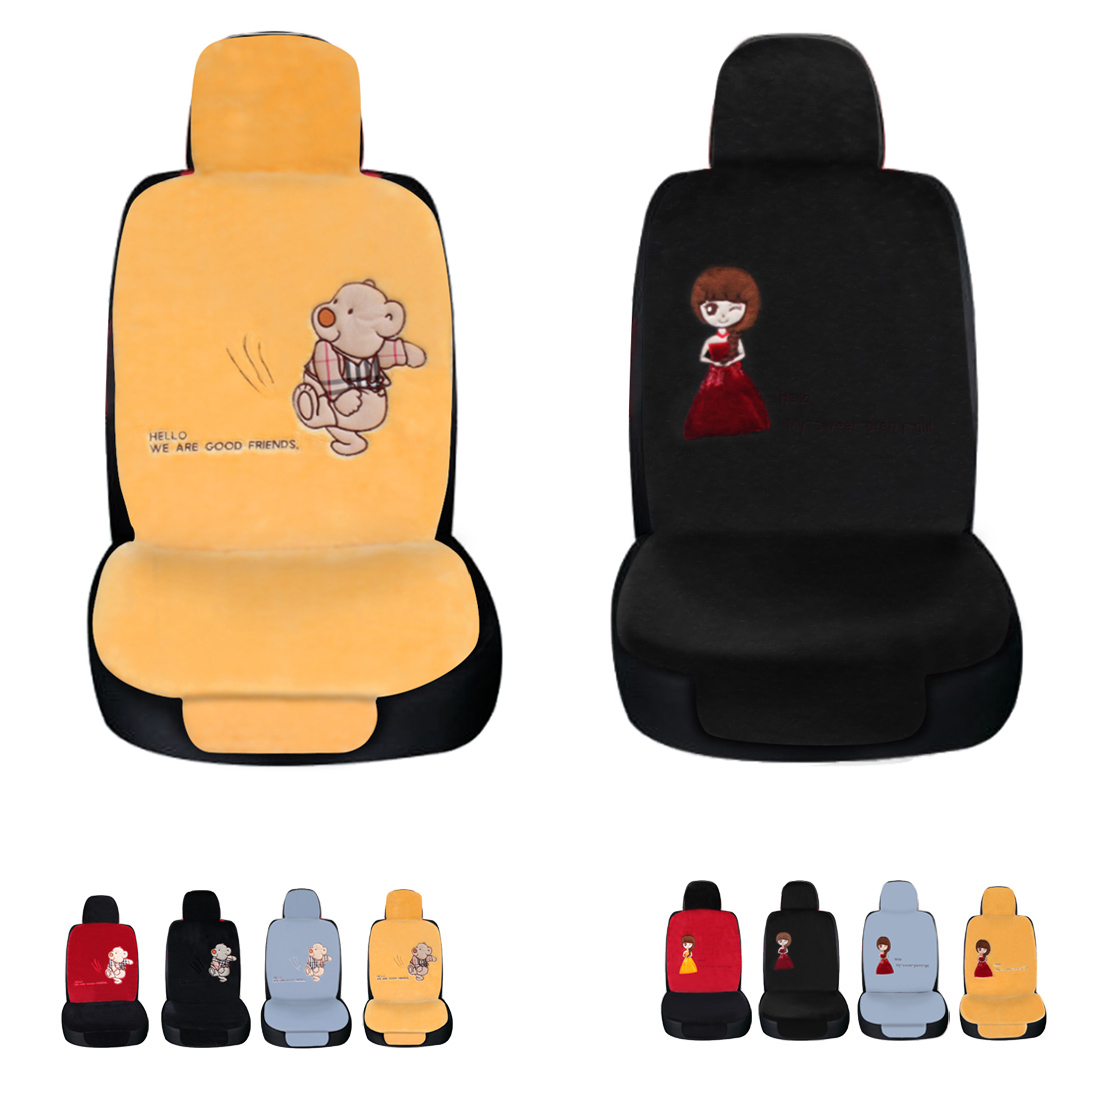 Dewtreetali Single Front Car Seat Cover Car Seat Cushion Bear Girl Winter Plush Cushion Car Seat Covers for Auto Van Truck 96mm kitchen cabinet handles bronze cupboard pulls antique zinc alloy drawer dresser wardrobe furniture handle pull knobs 128mm